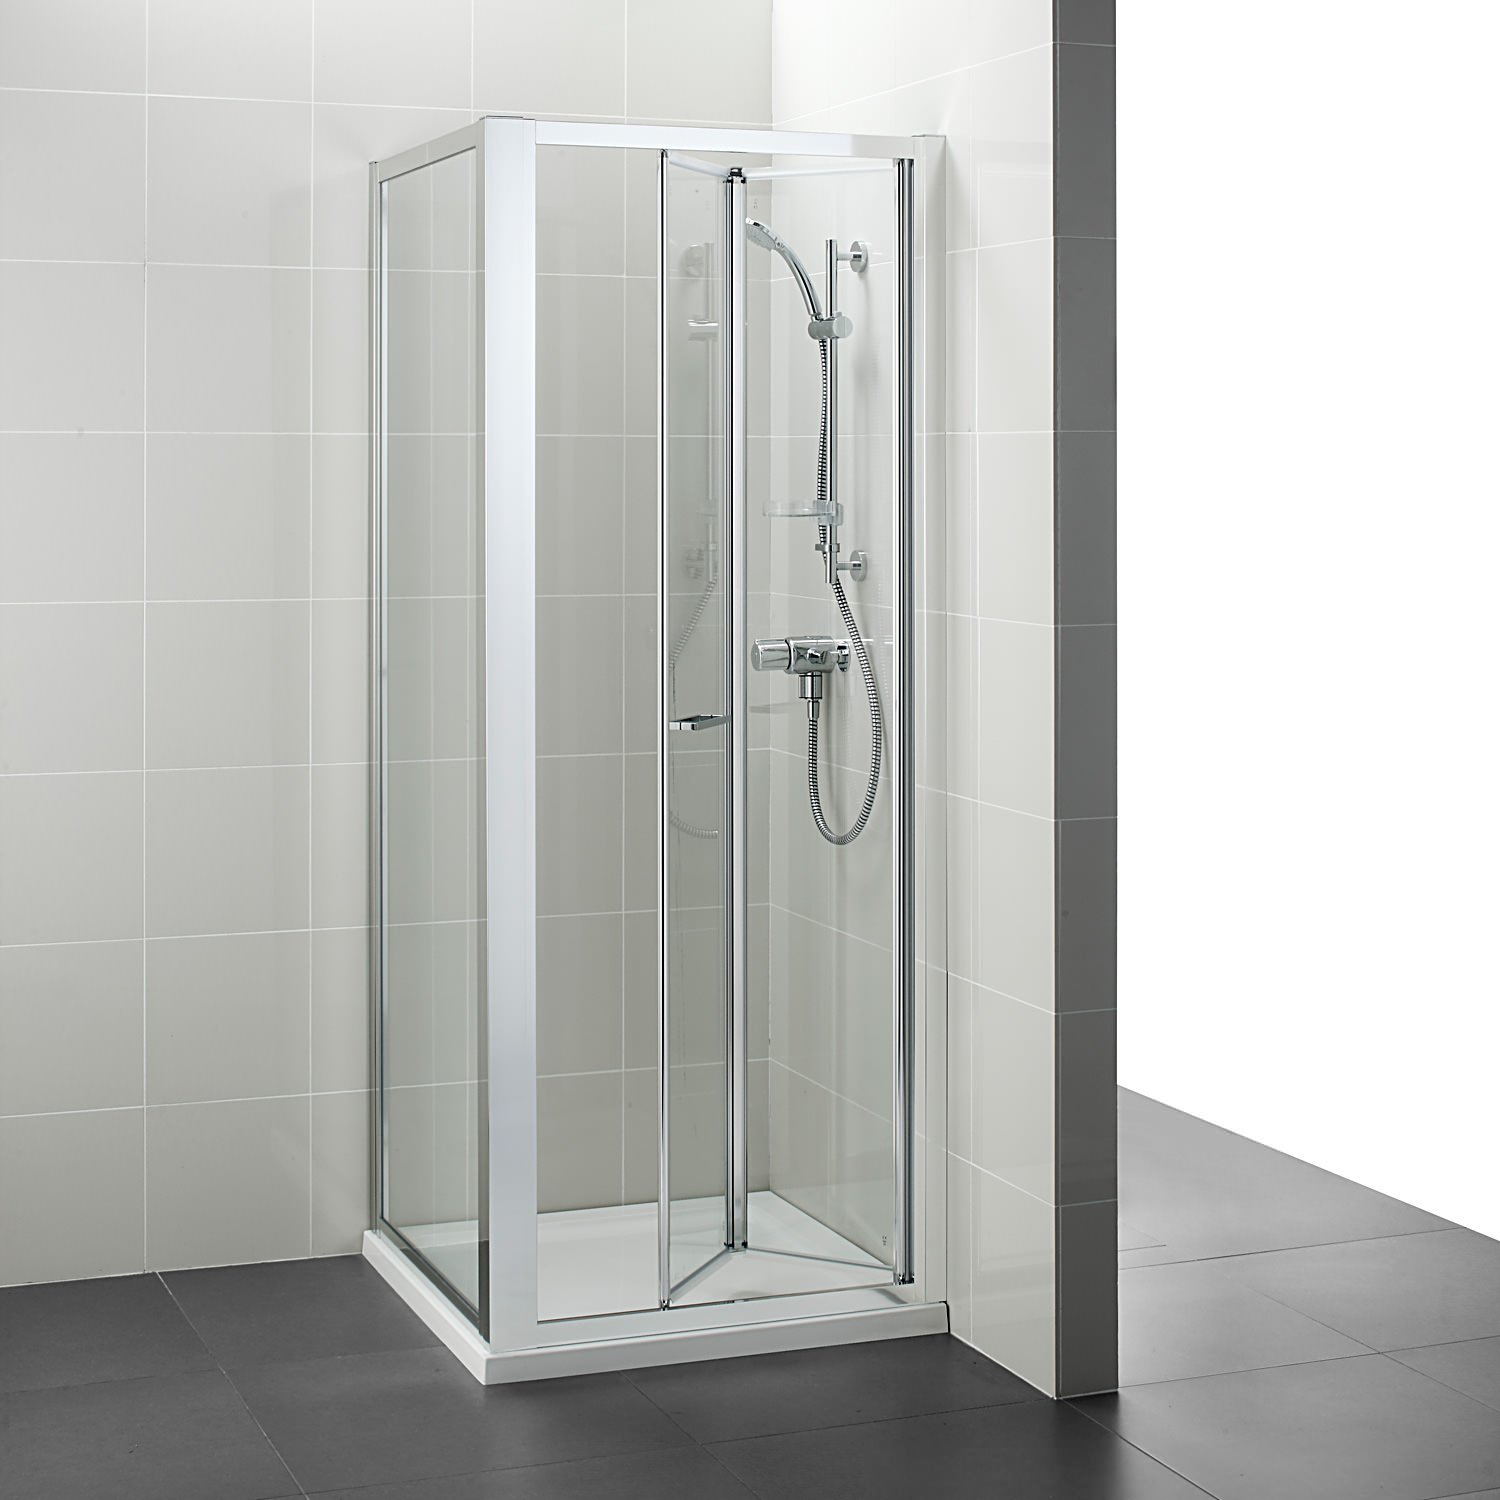 Ideal Standard Kubo 760mm Bifold Shower Door